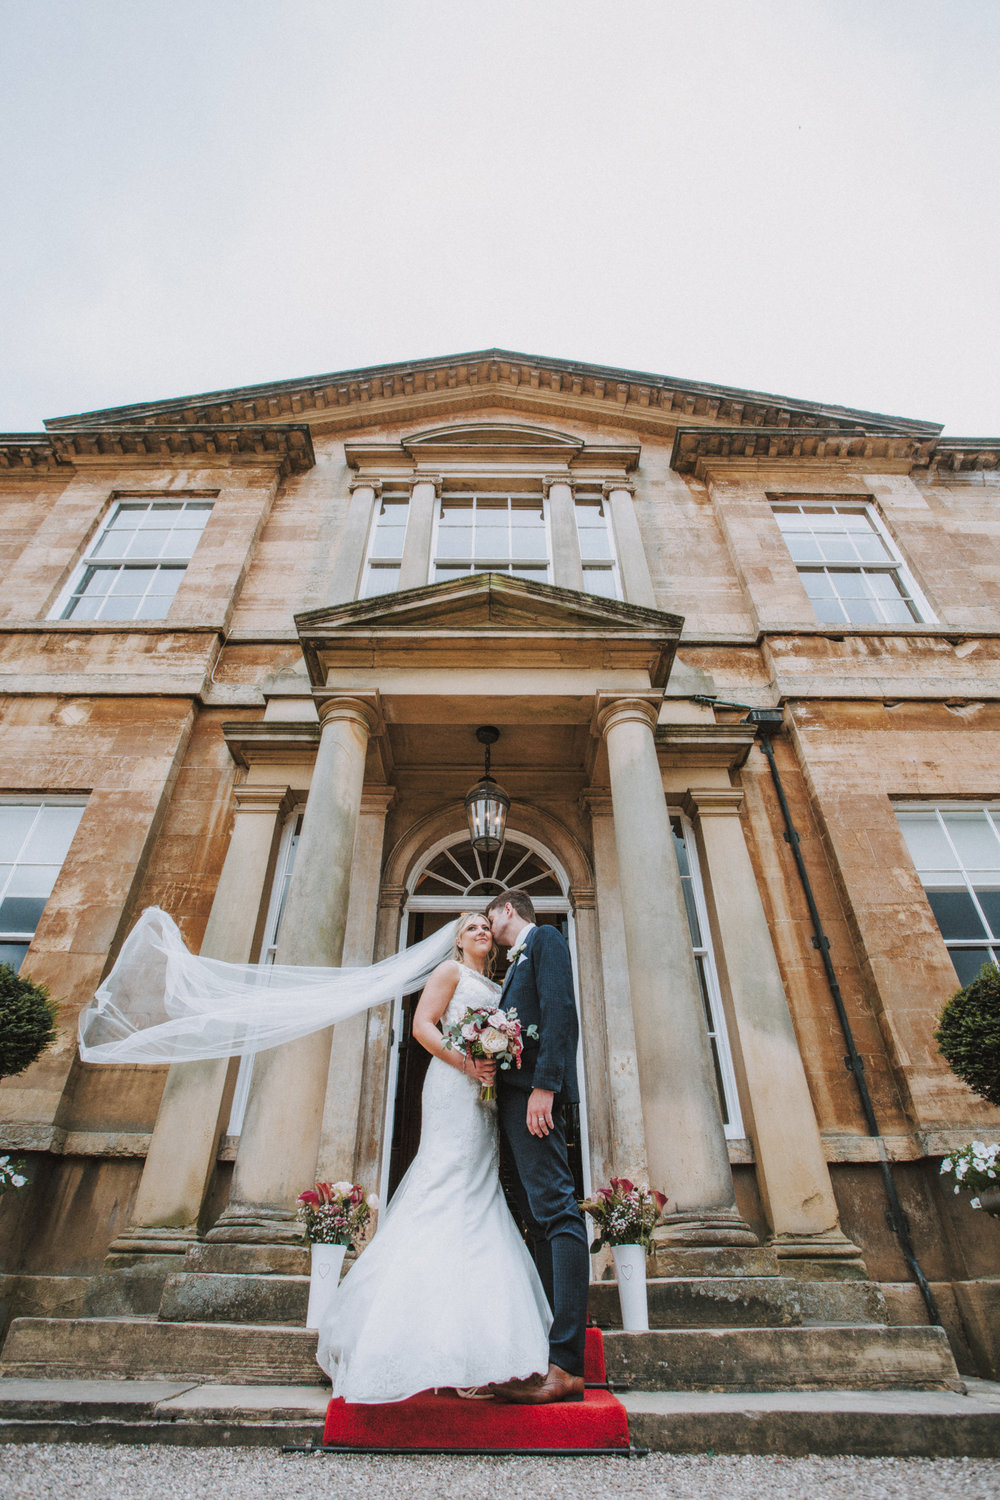 bowcliffe hall wedding photographers yorkshire-42.jpg